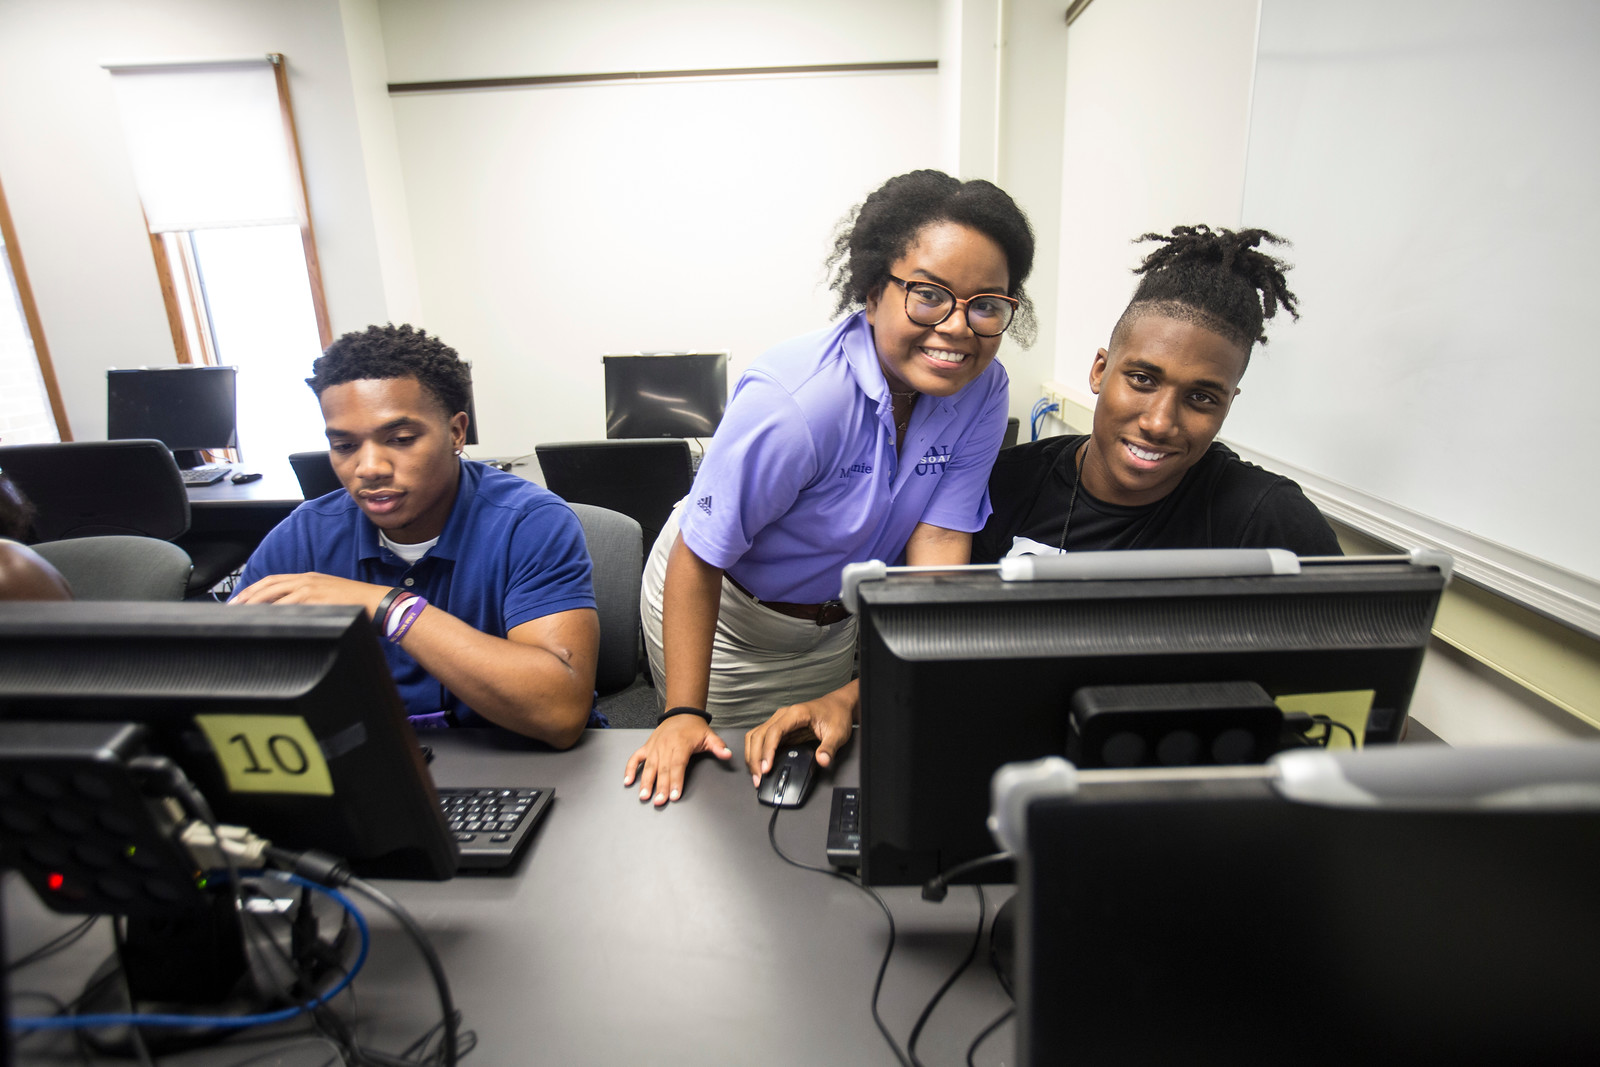 Students at the University of North Alabama getting help with registration.